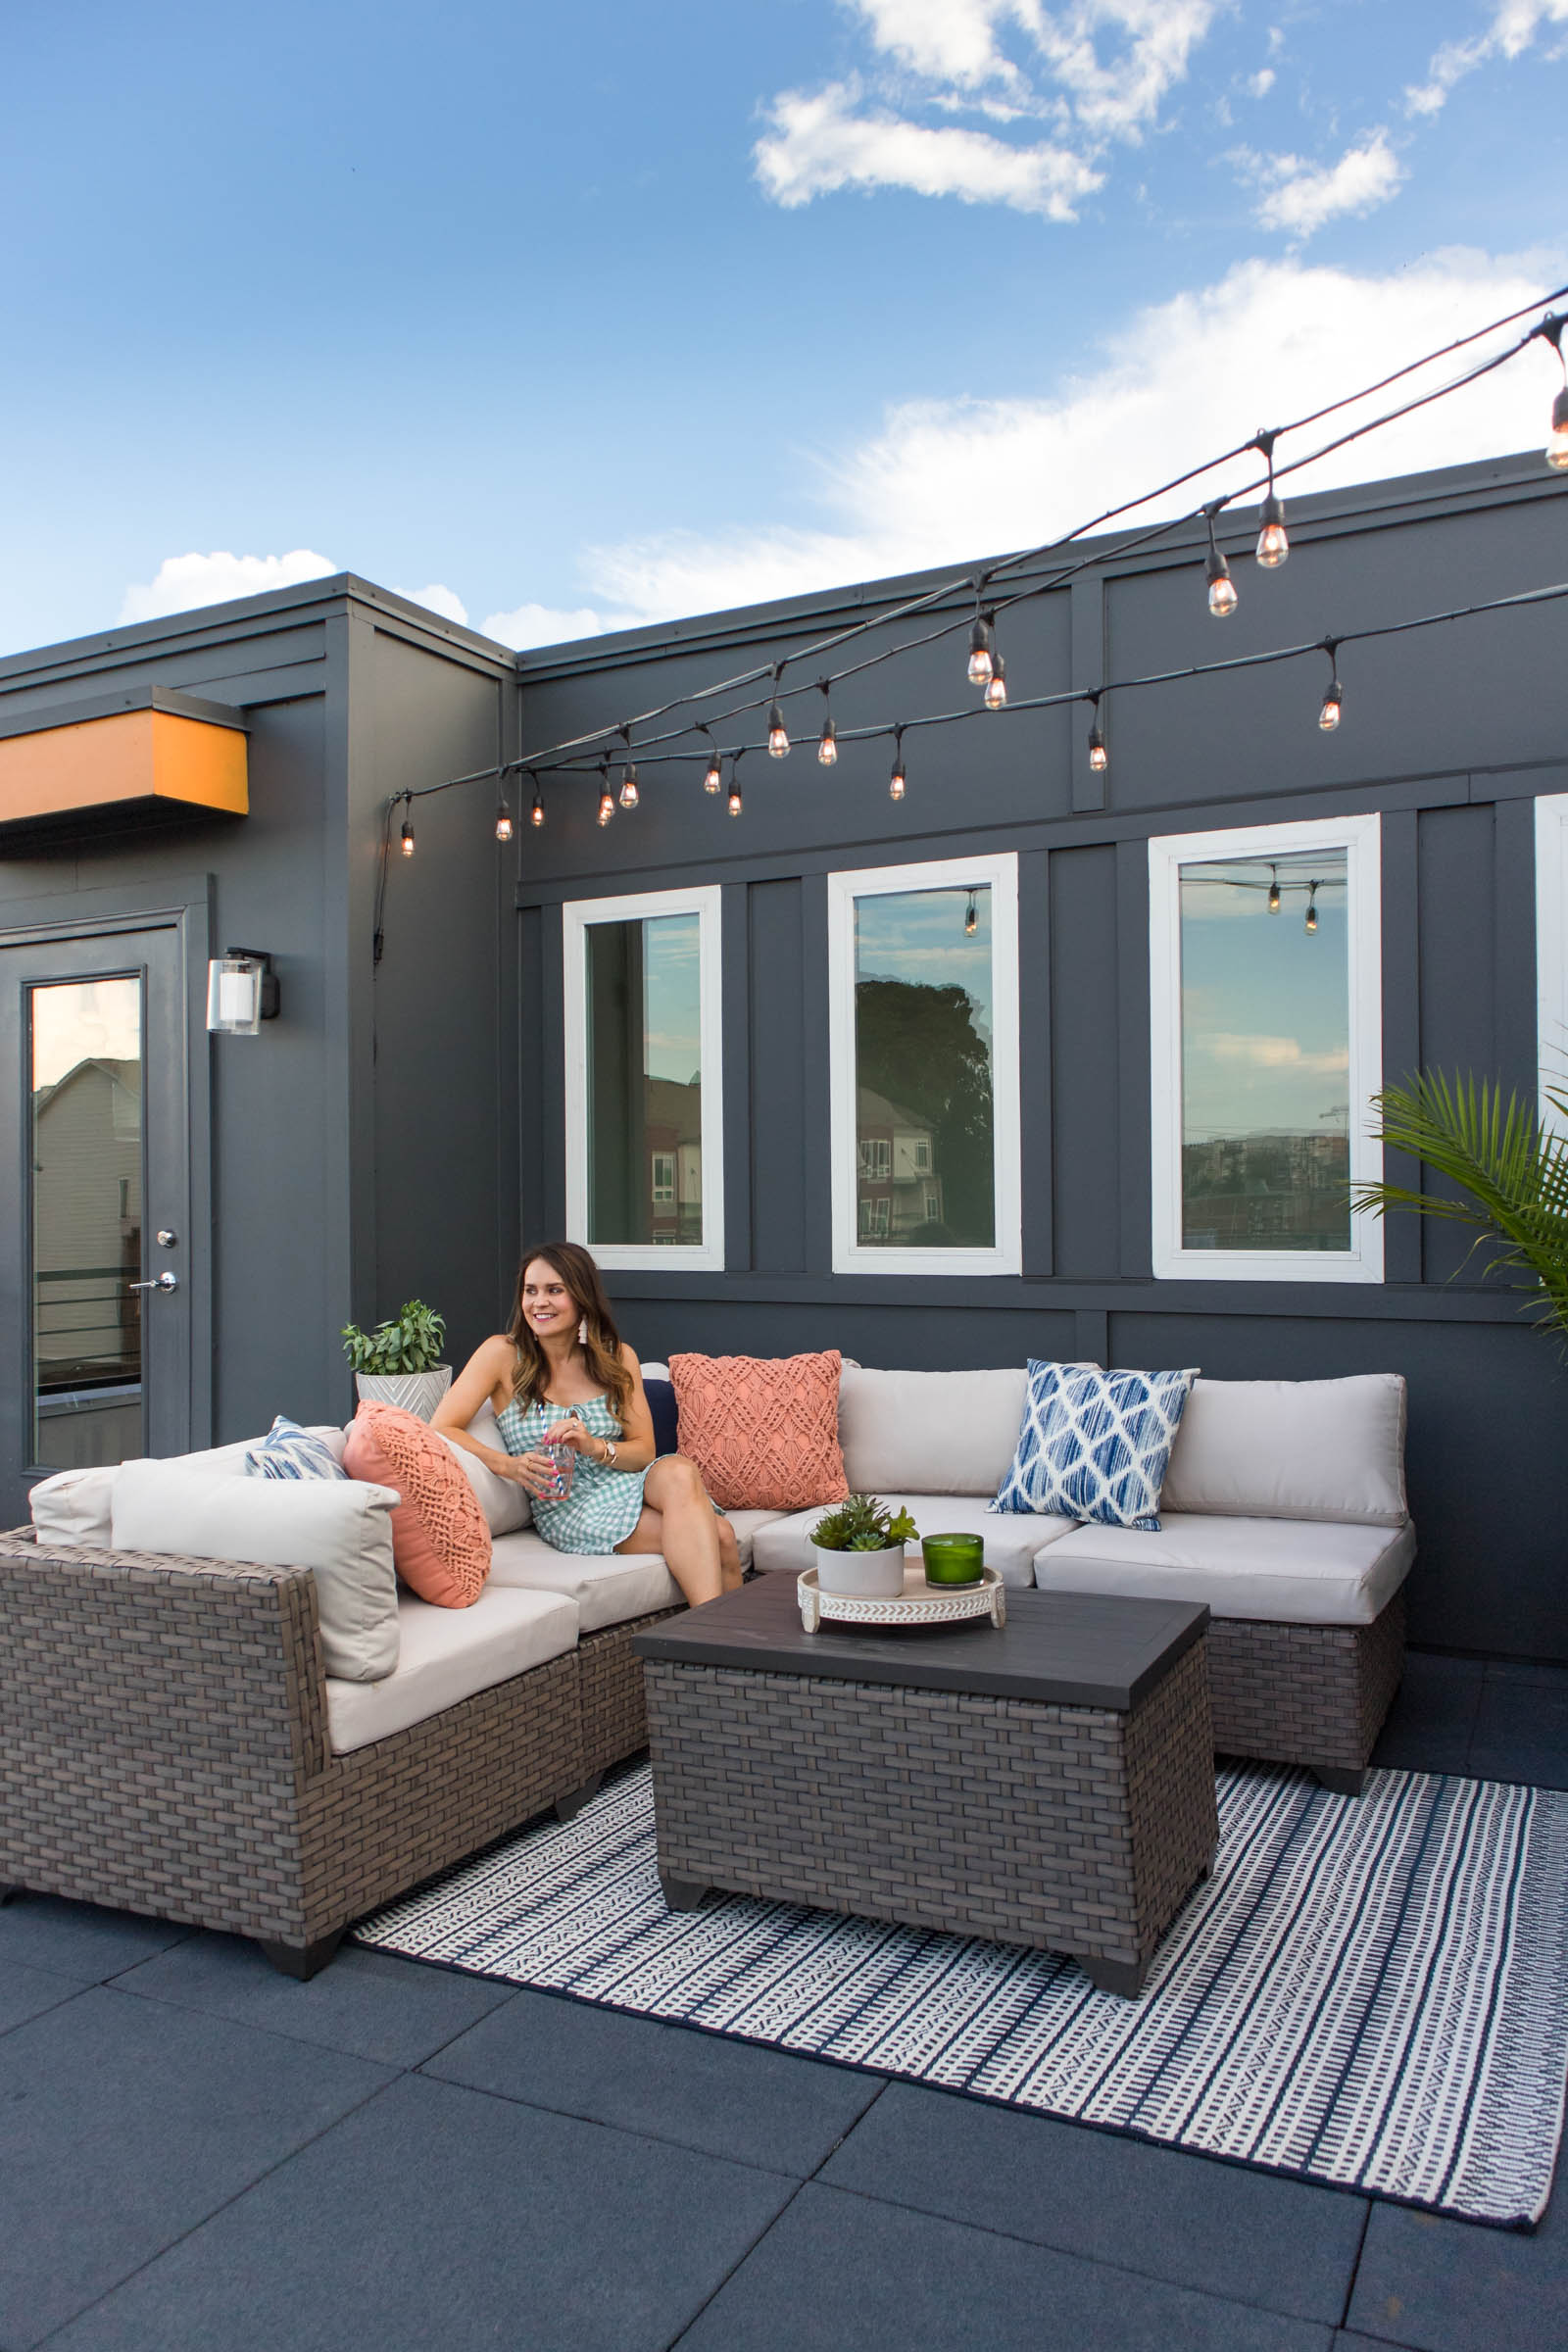 rooftop terrace decor, outdoor patio